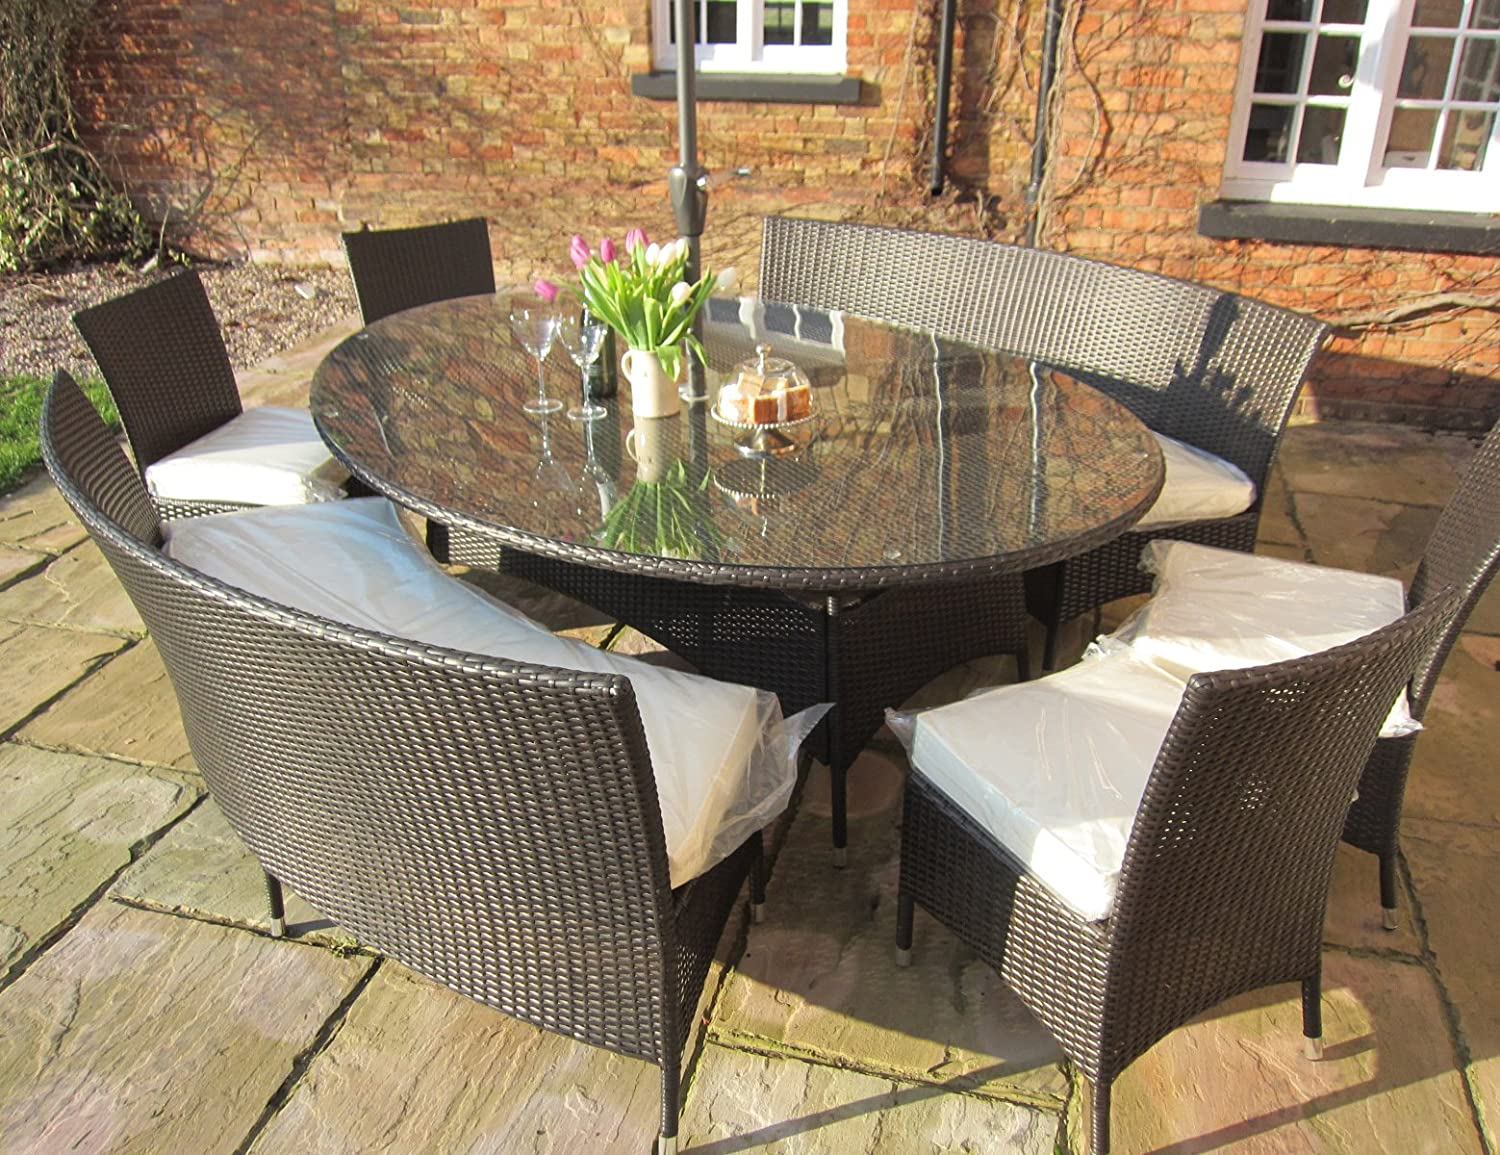 Balmoral ALL WEATHER Rattan Dining Set Oval Table And 10 Seat Bench And  Chairs With Cushions U0026 FREE COVER WORTH £70 FOR A LIMITED TIME.